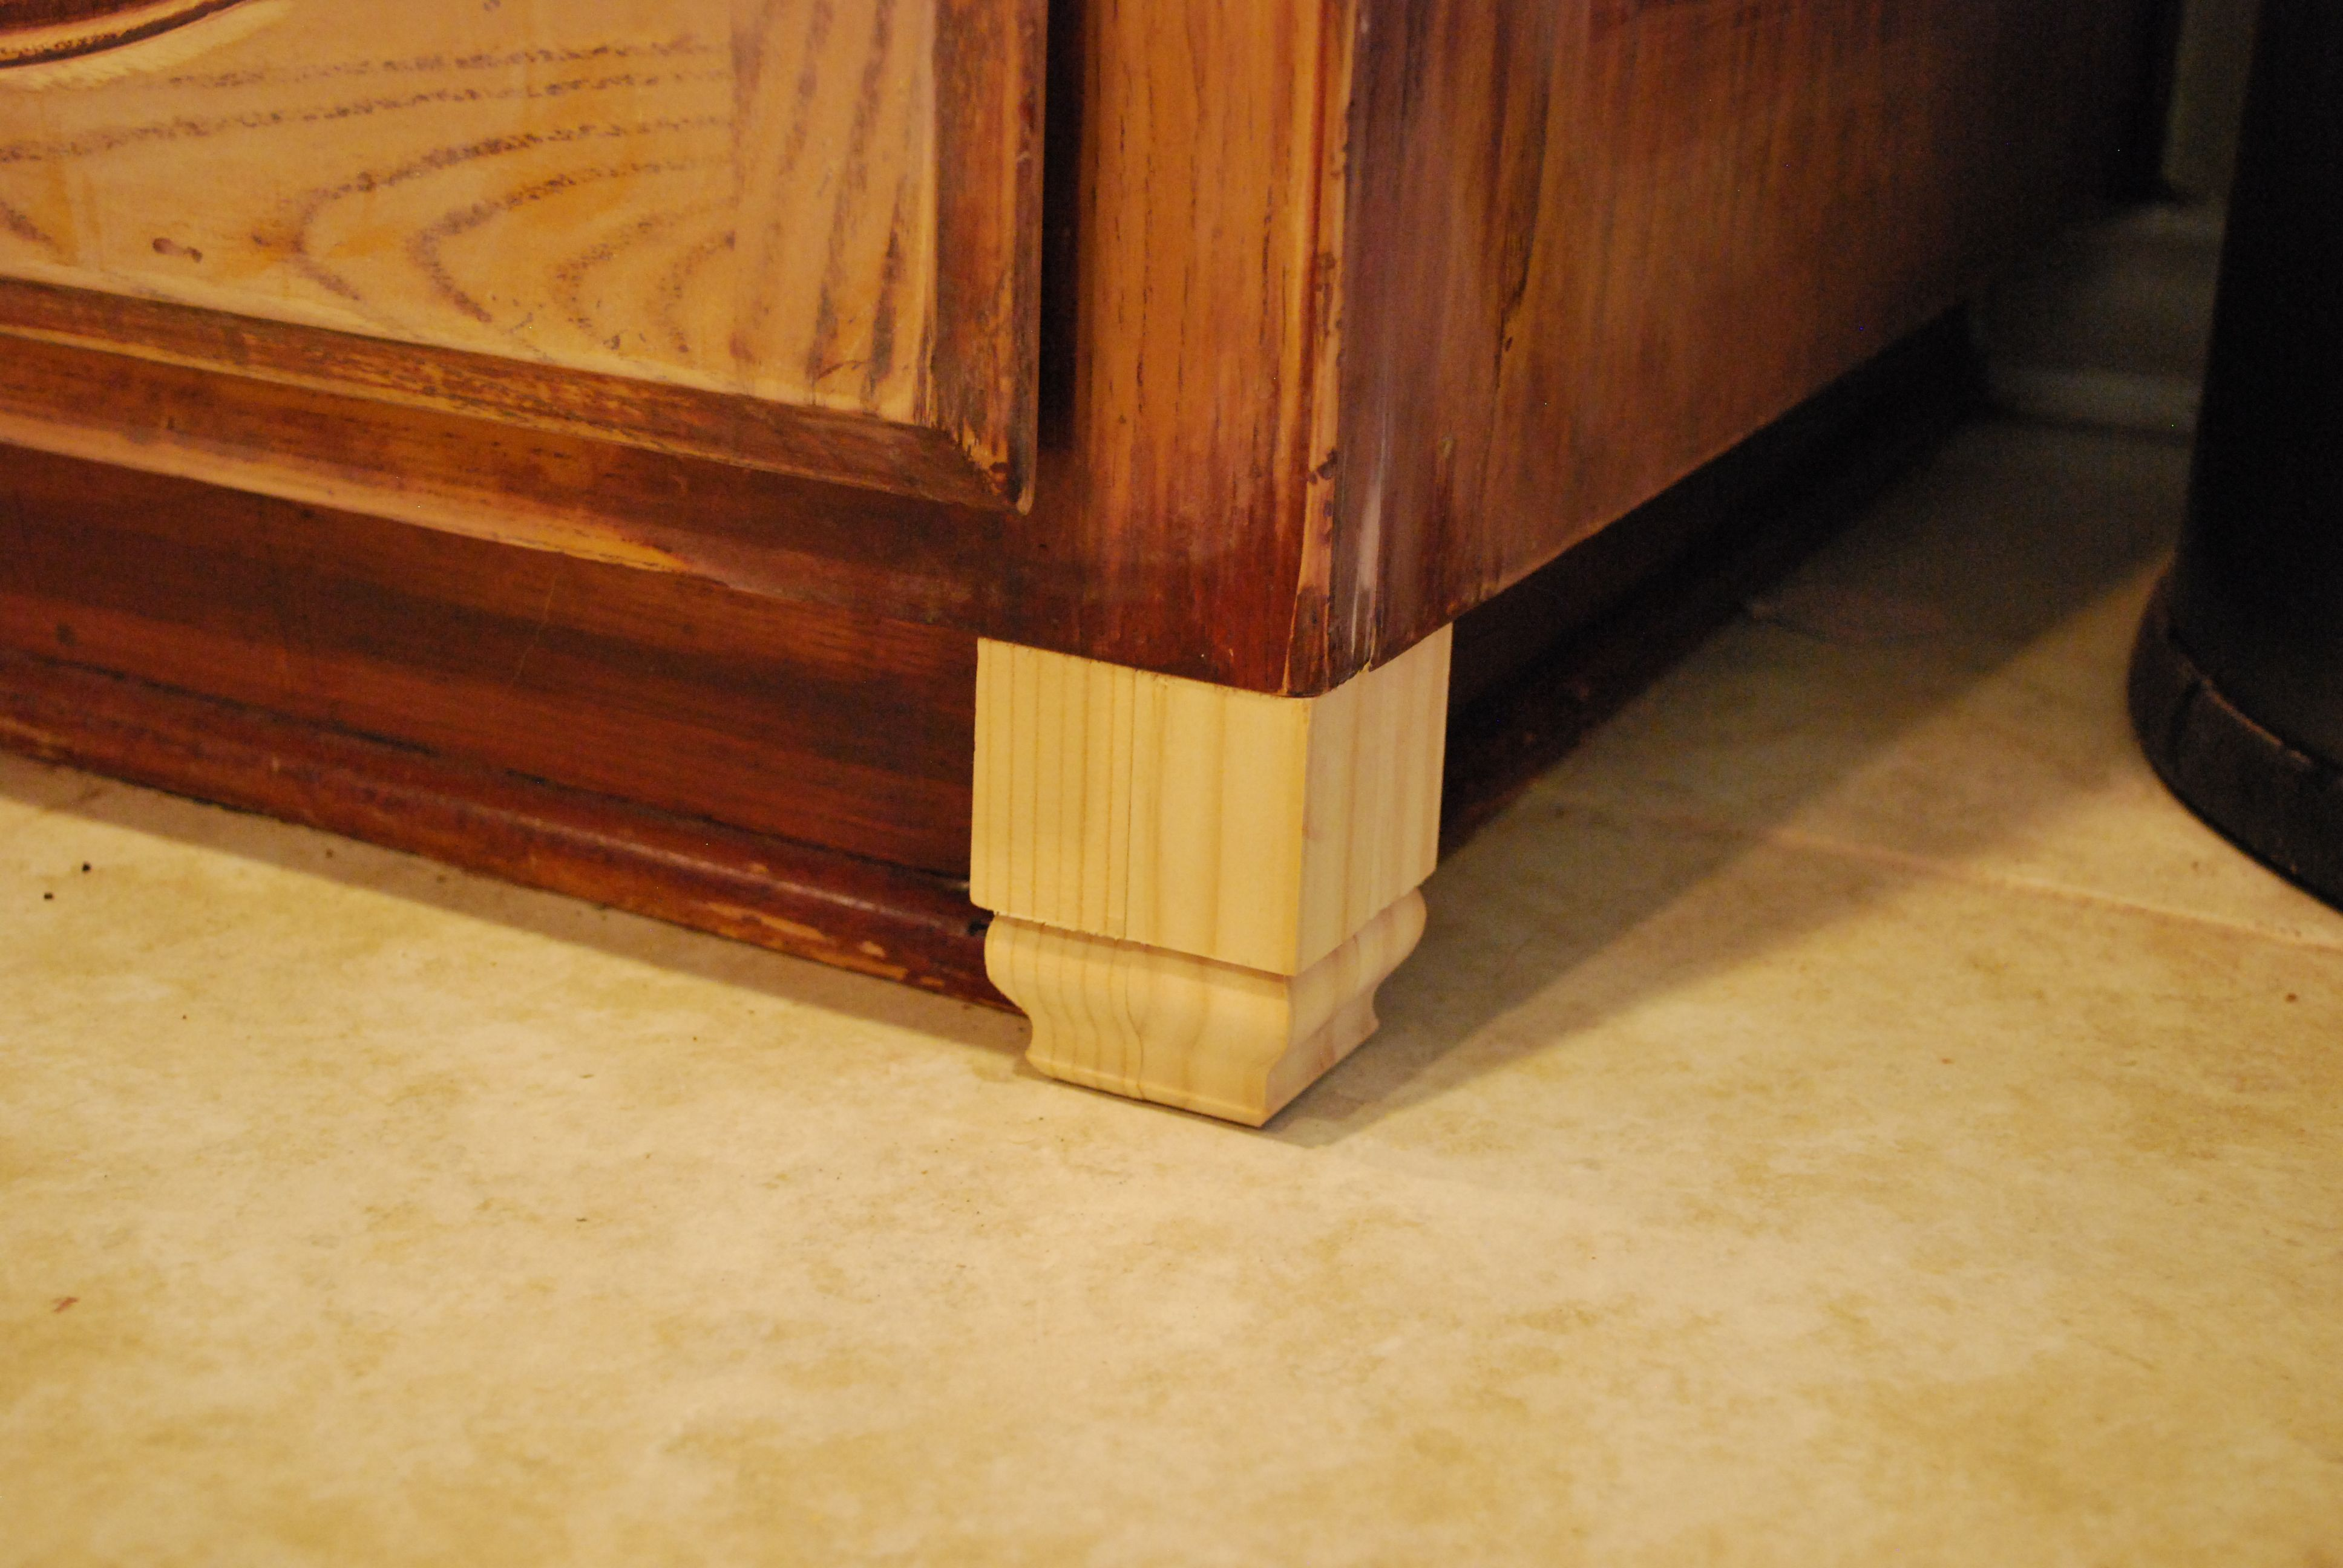 Cabinet feet made from base molding pieces from Home Depot